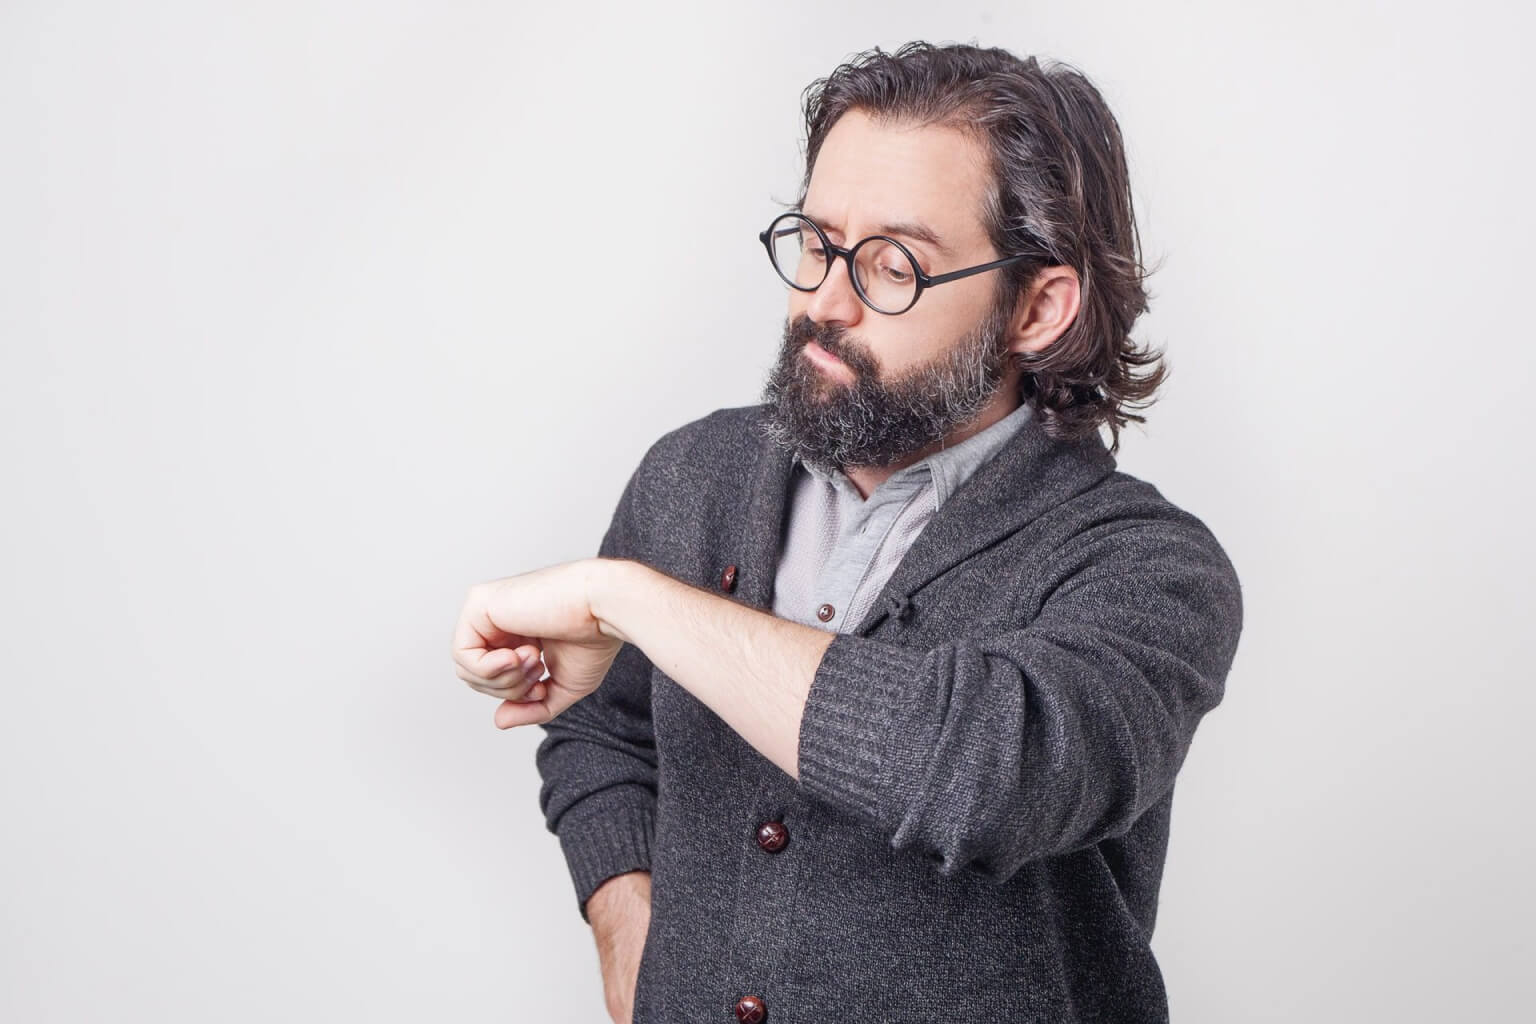 Habits and Routines of Author and Entrepreneur David Kadavy